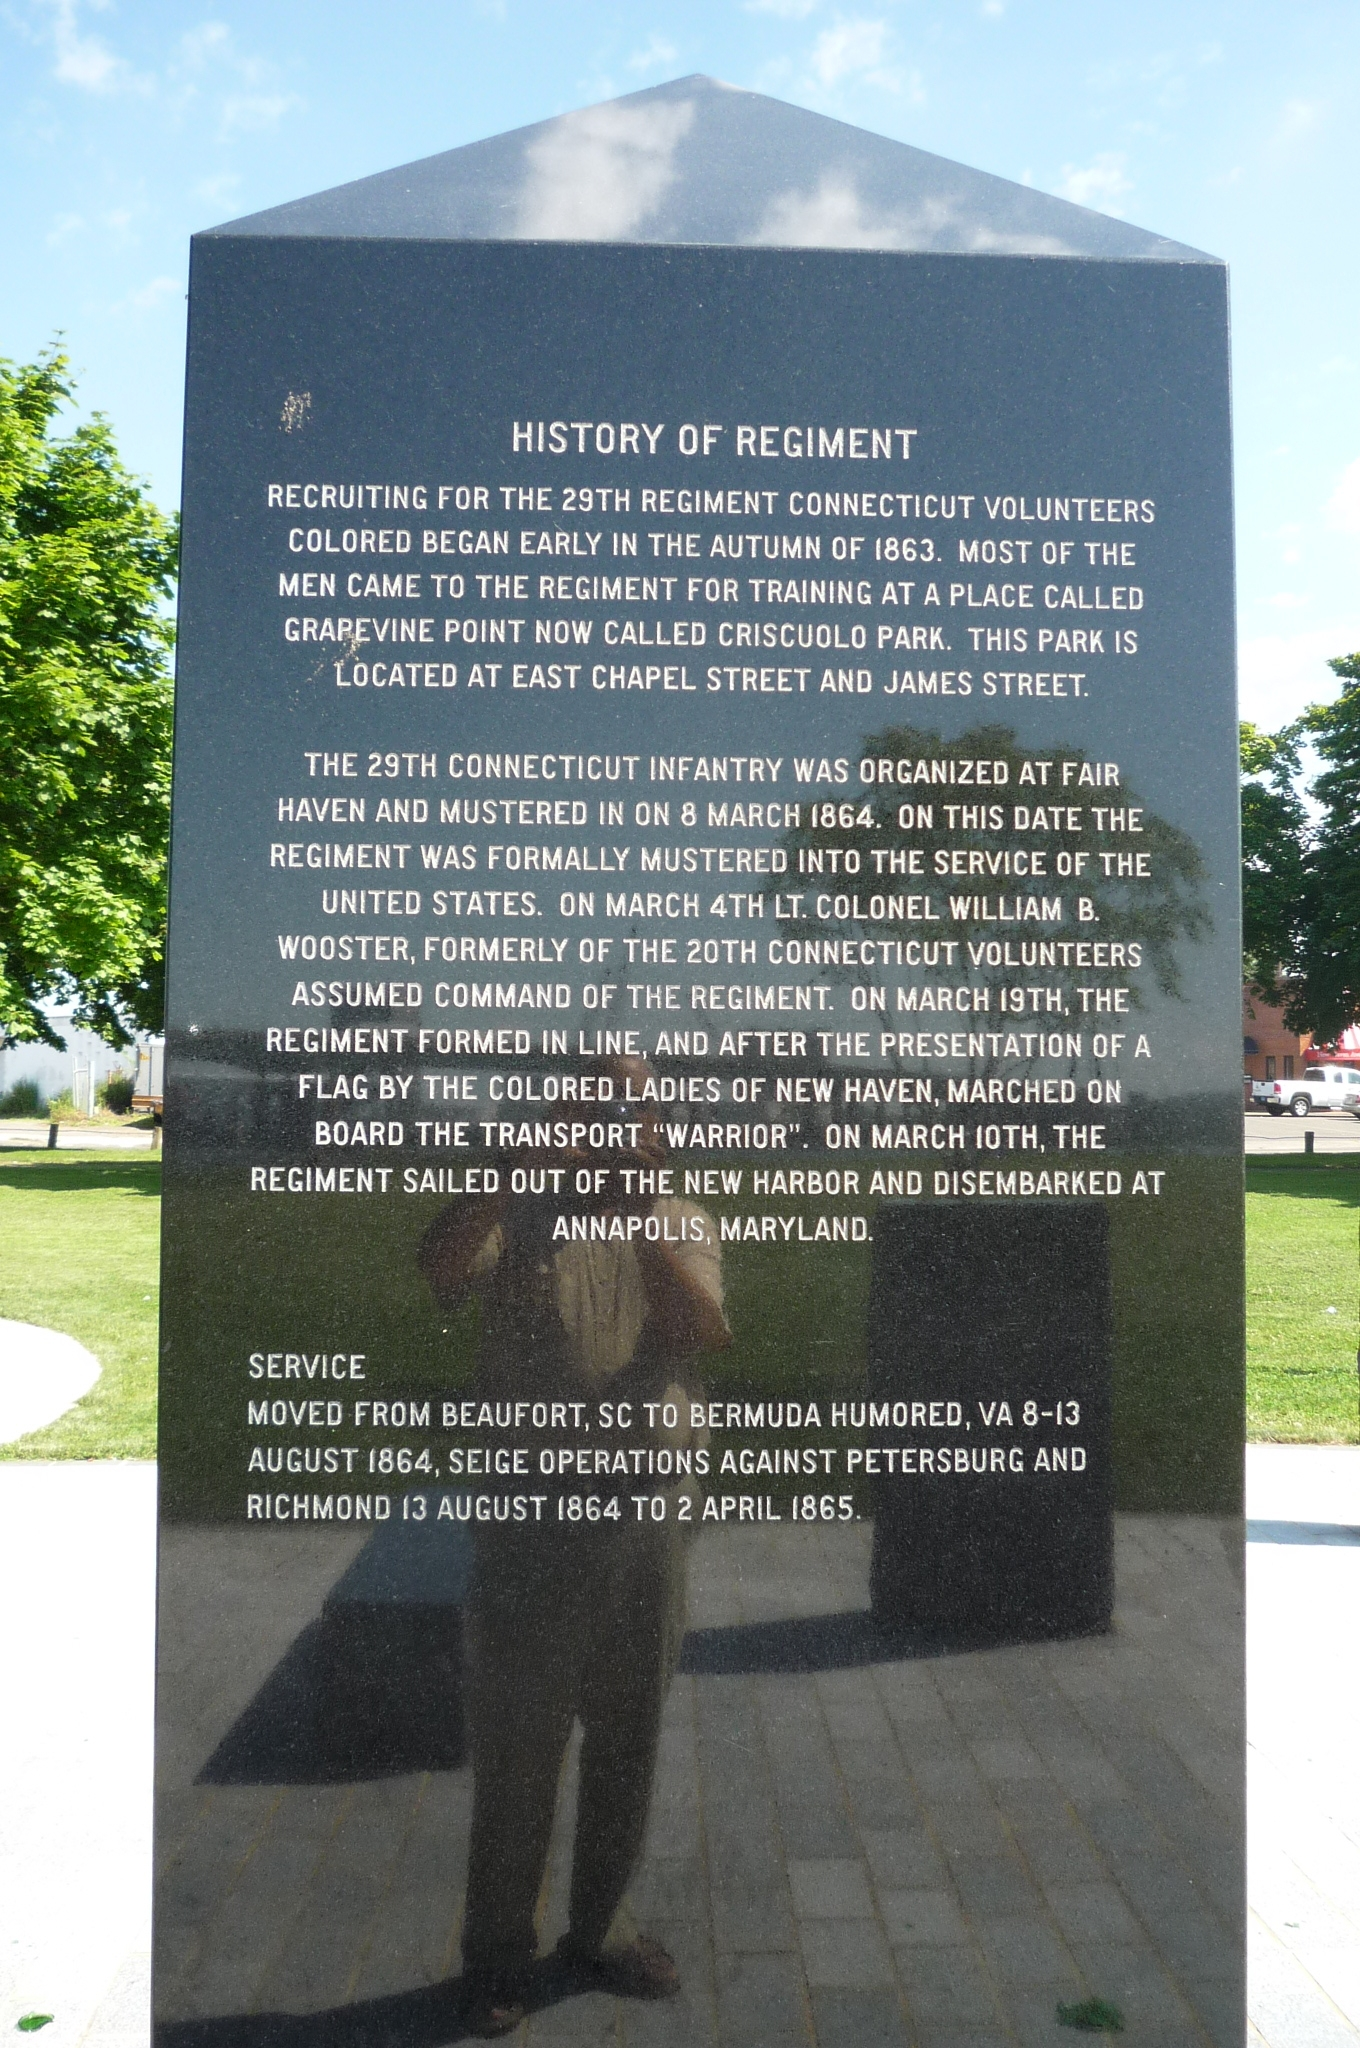 South side of the memorial obelisk, telling the history of the 29th Regiment